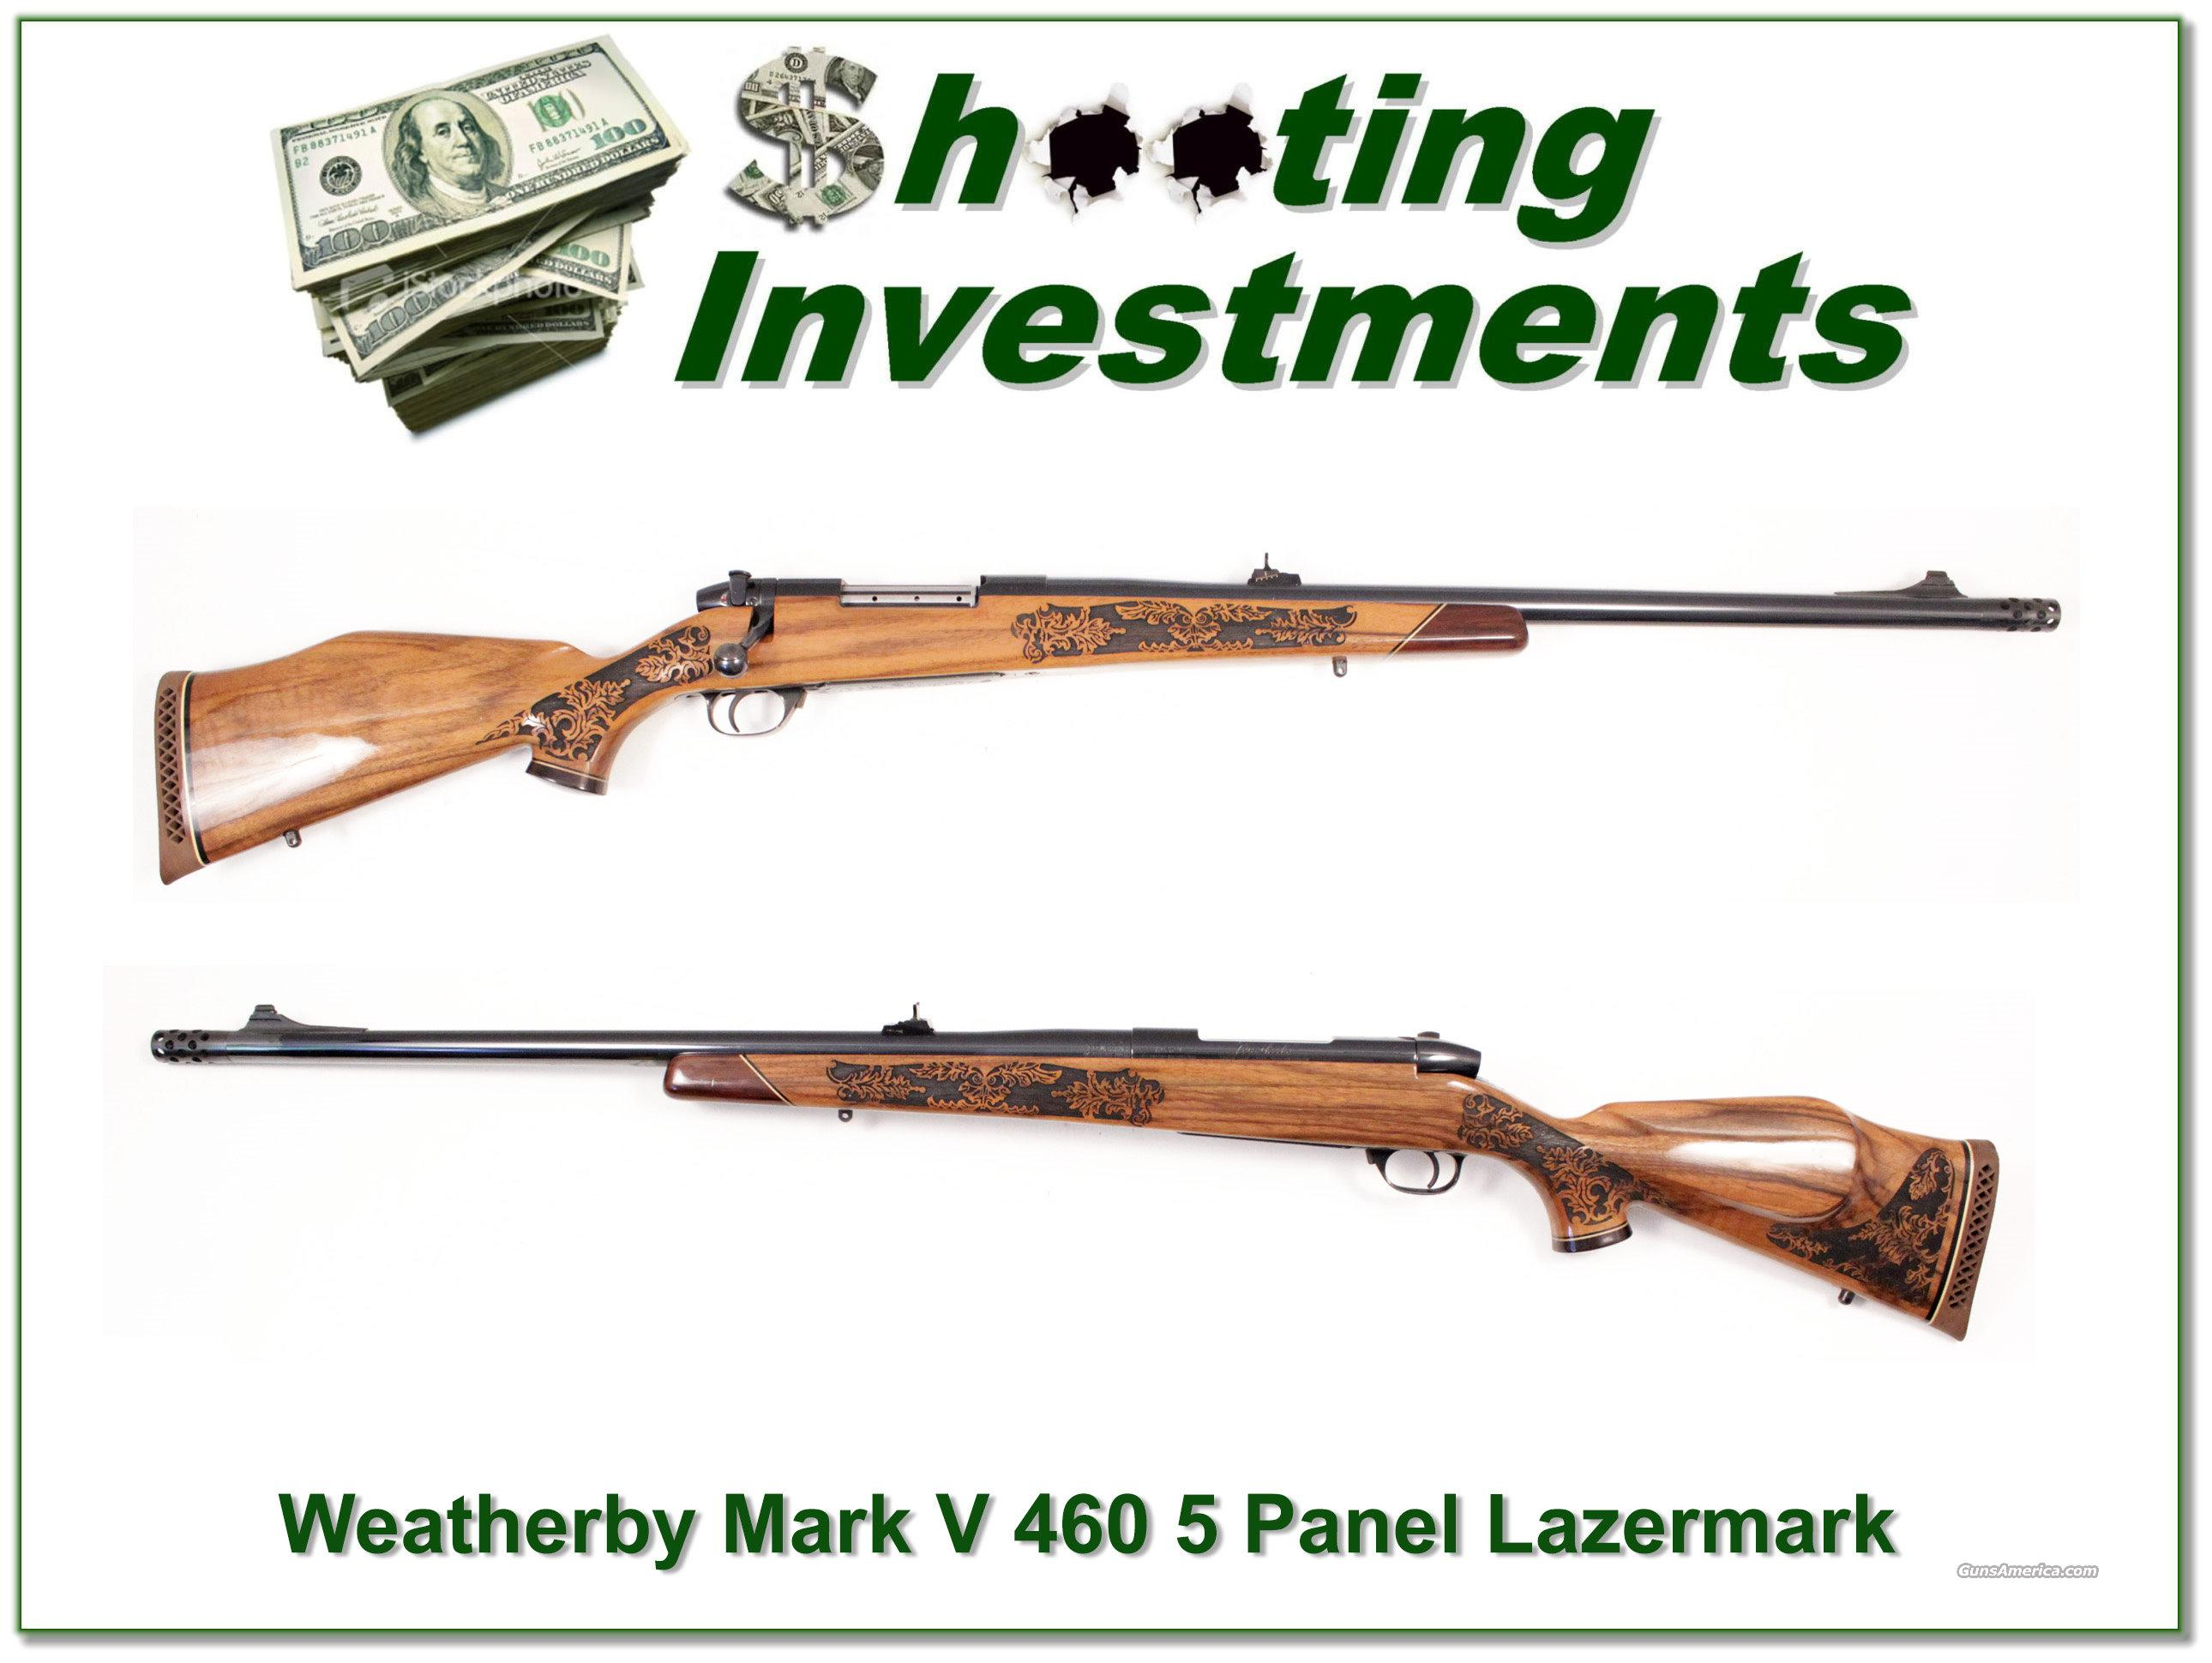 Weatherby Mark V 460 5 Panel Lazermark  Guns > Rifles > Weatherby Rifles > Sporting